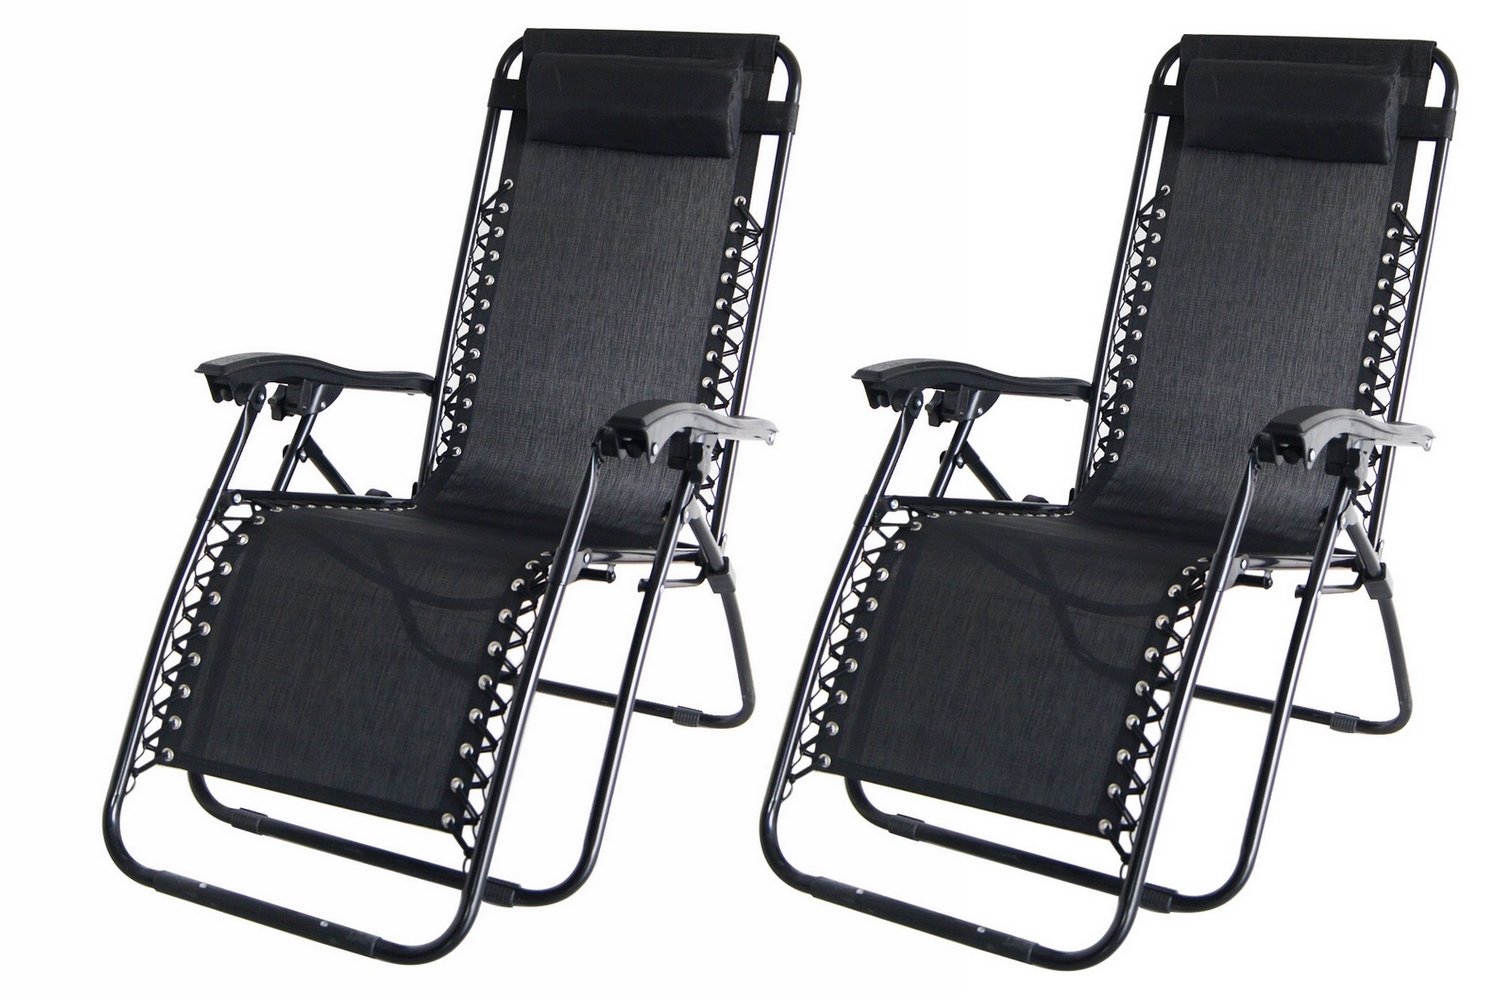 2x Palm Springs Zero Gravity Chairs Lounge Outdoor Yard Patio Chairs Beach